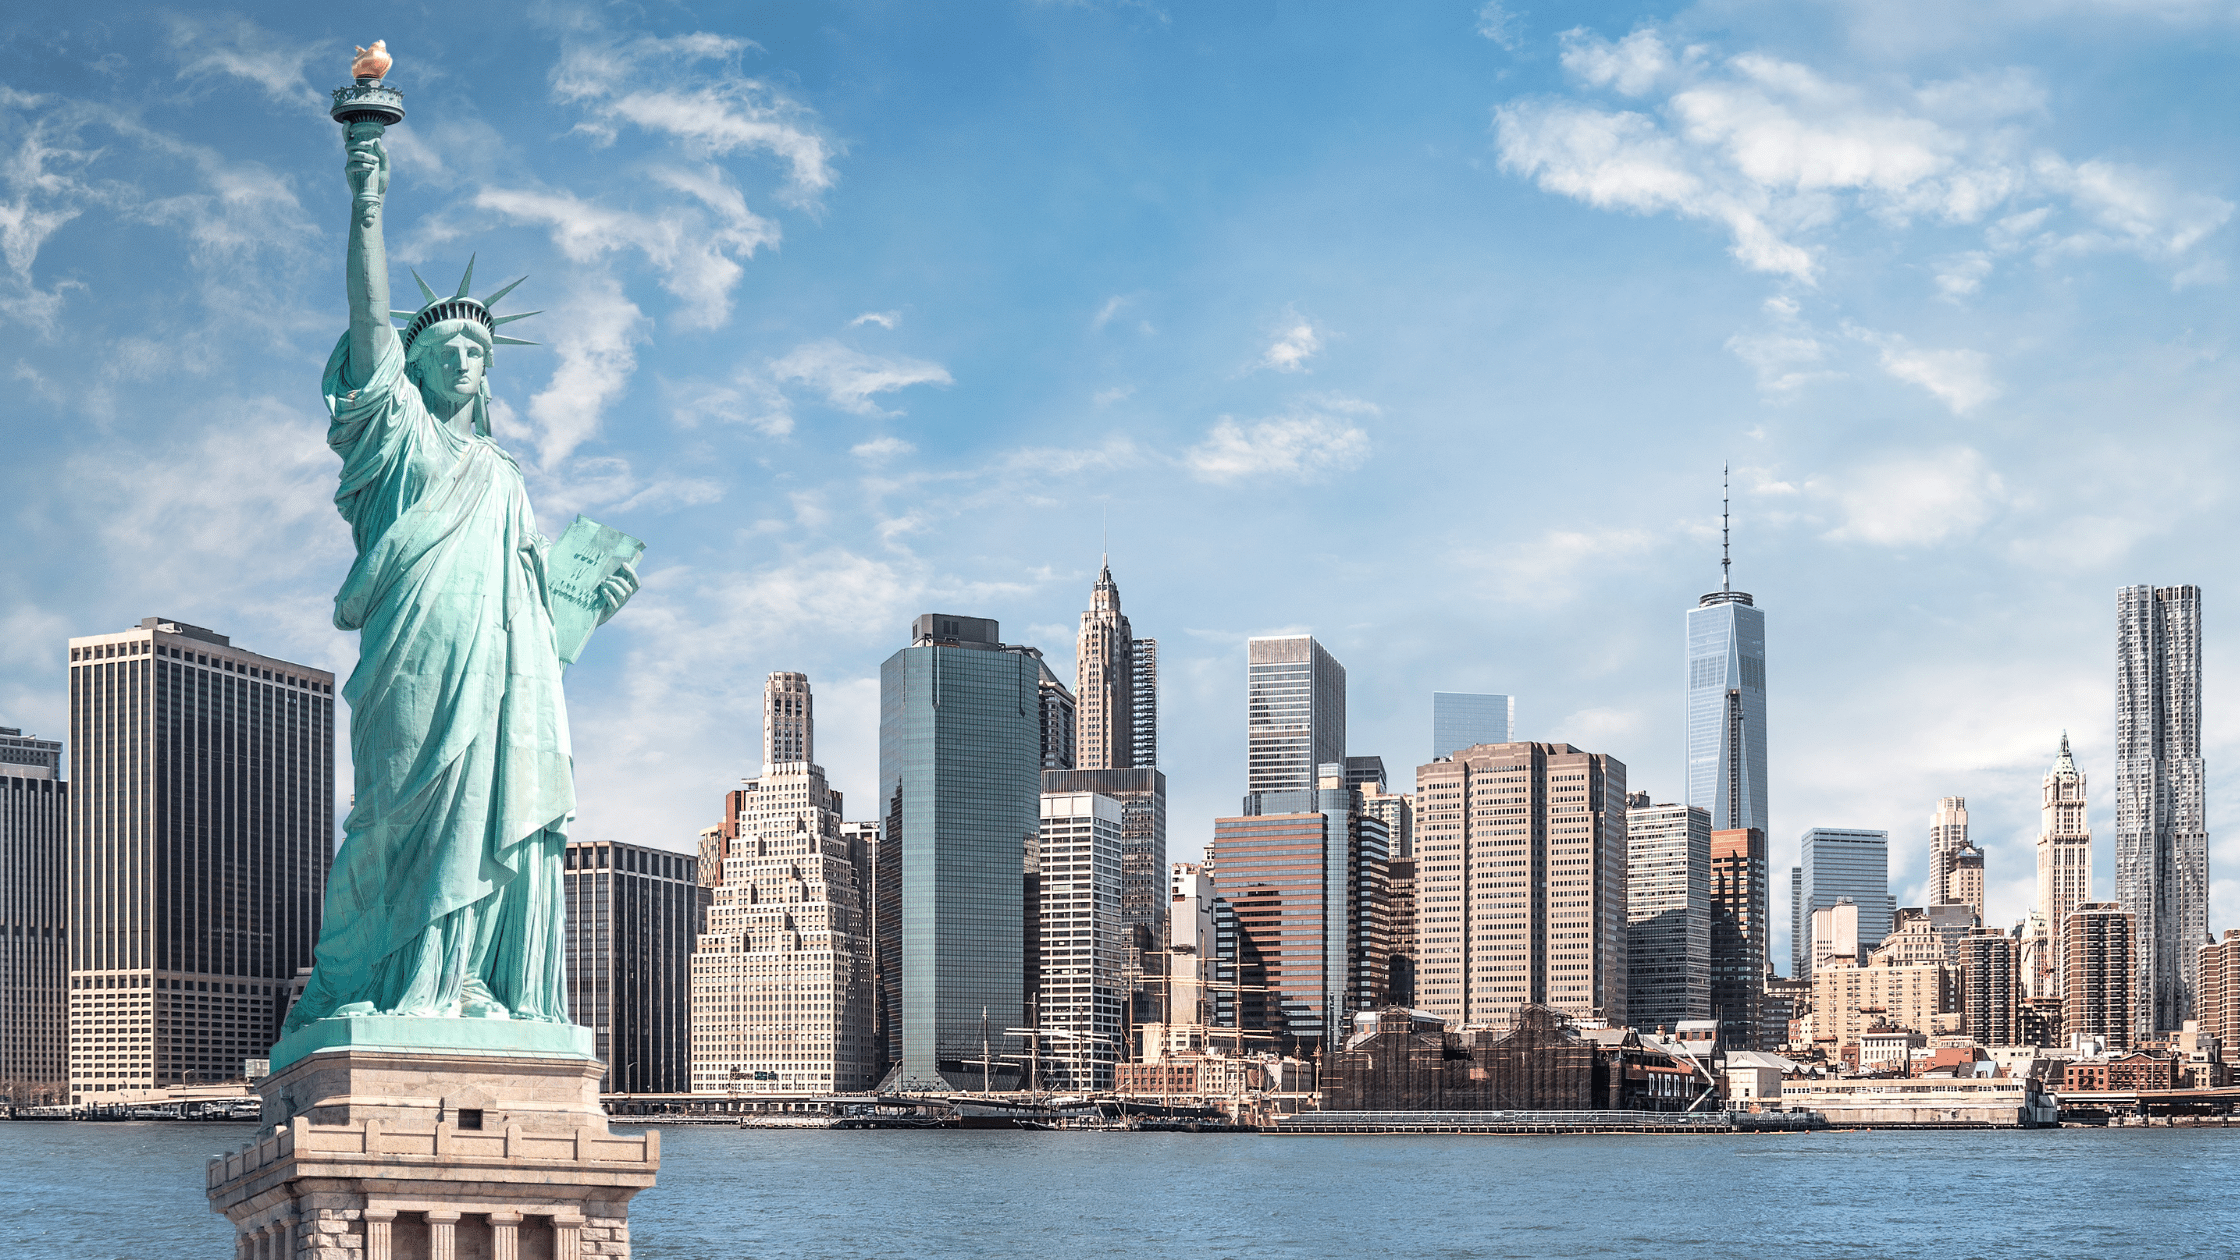 Travel to New York from Ireland for an amazing getaway experience